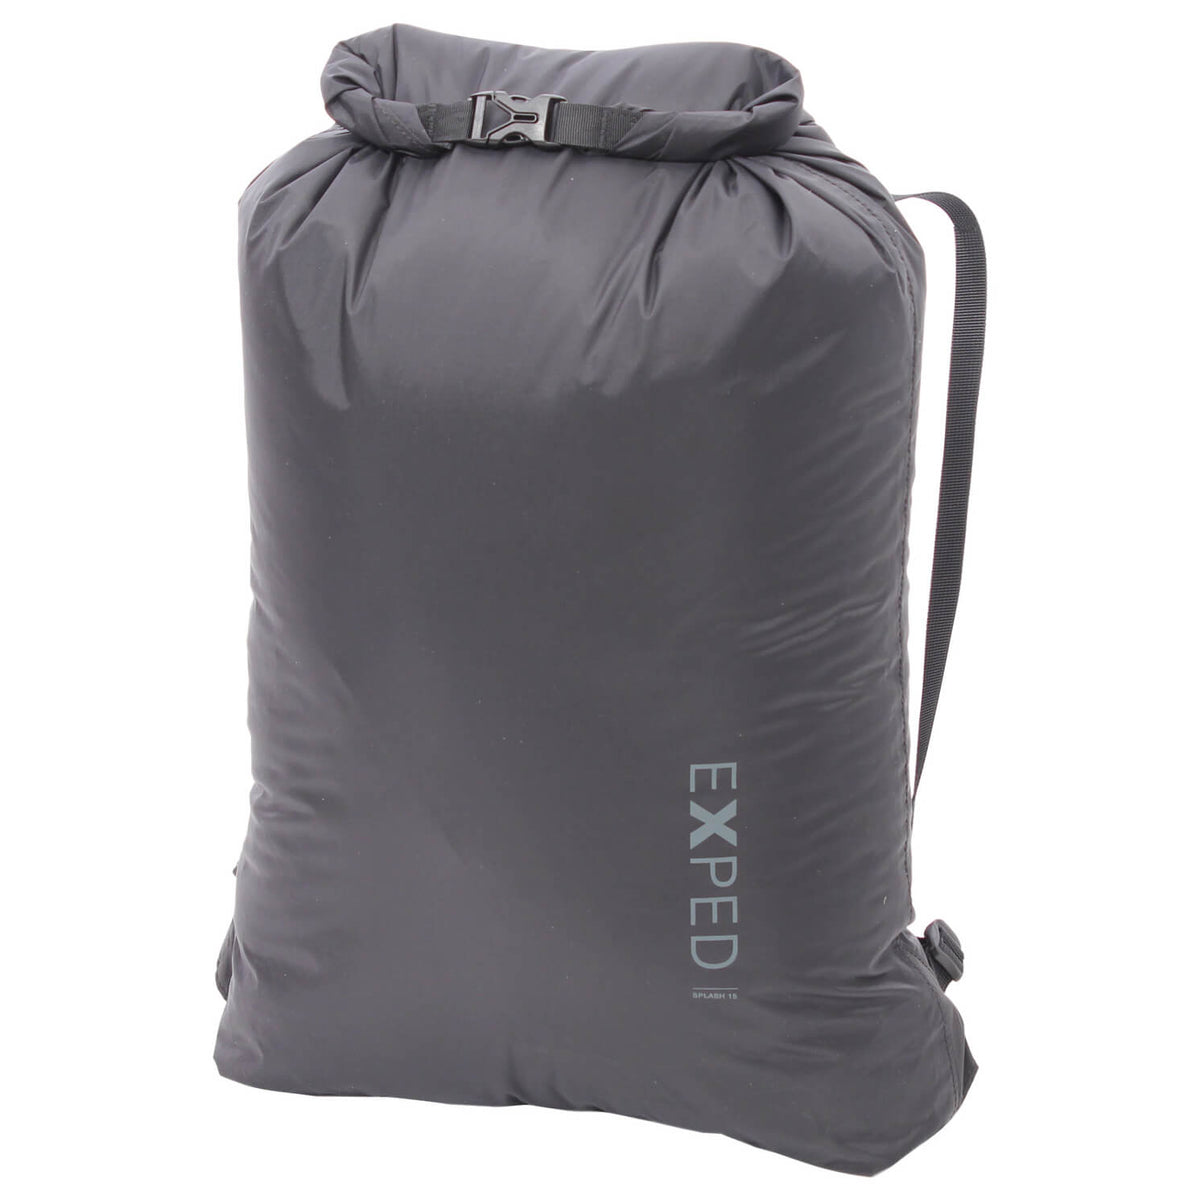 exped splash 15 drybag, front view shown folded over in black colour